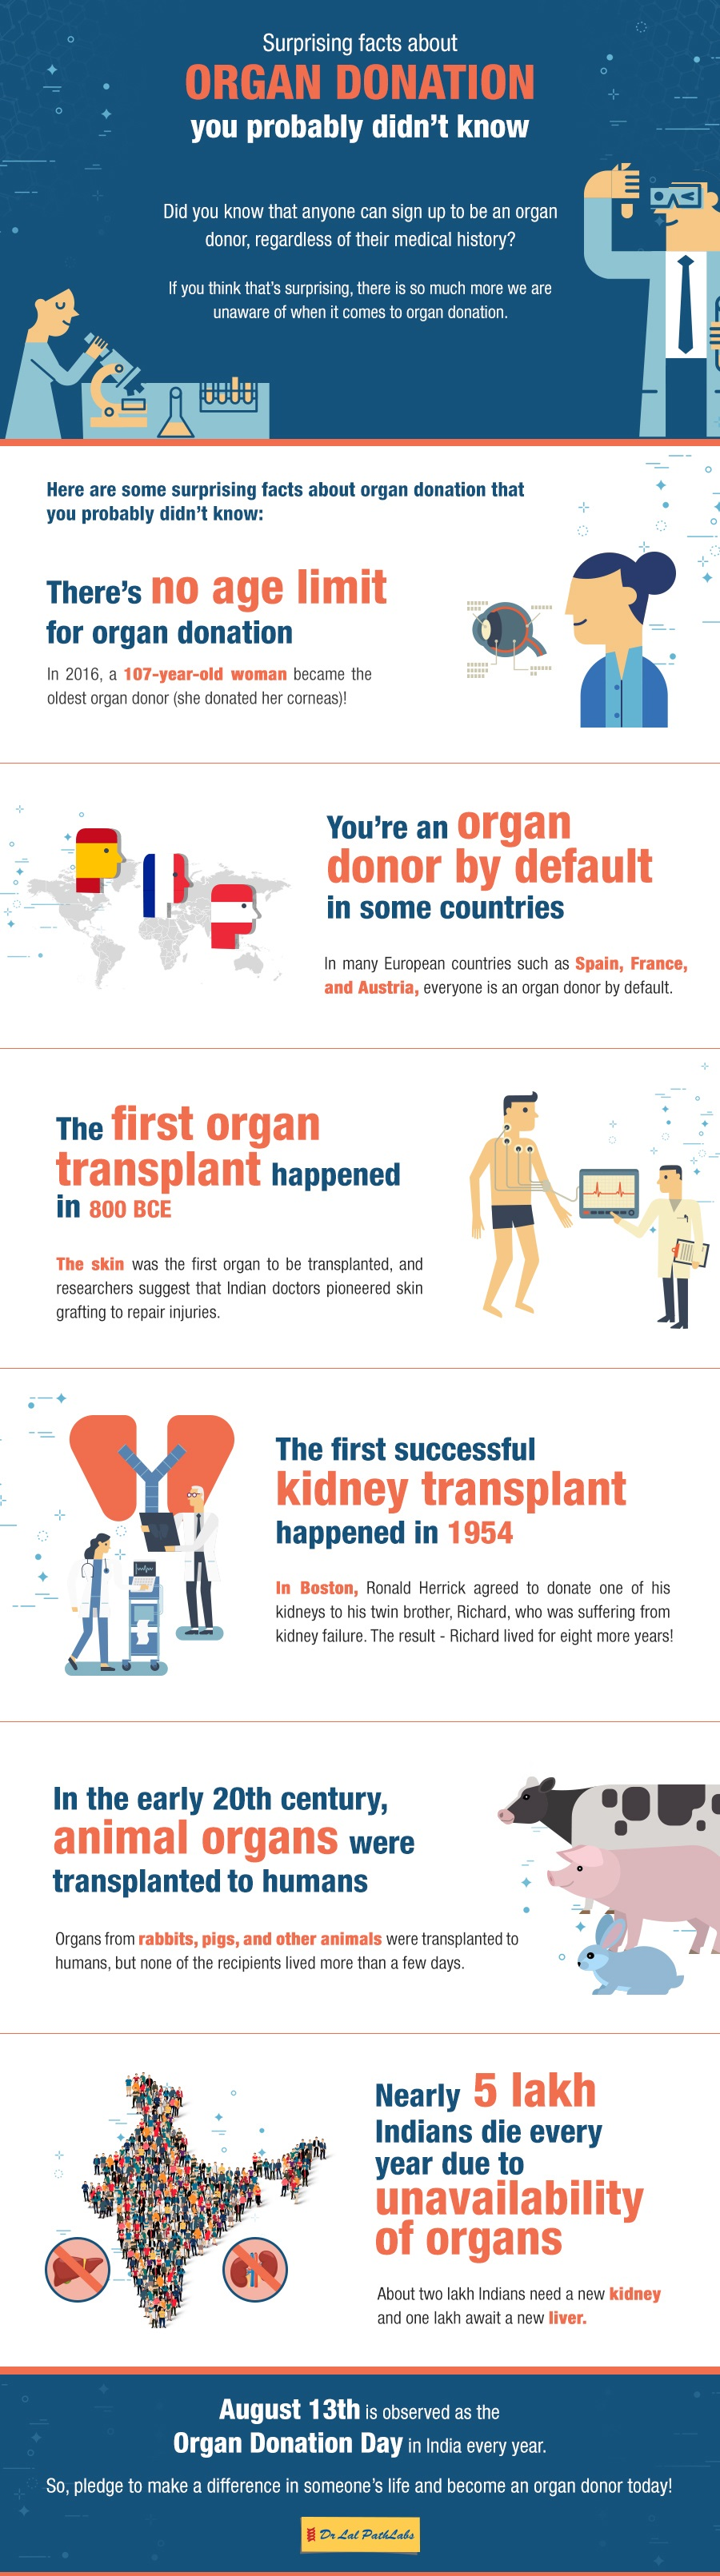 Facts About Organ Donation